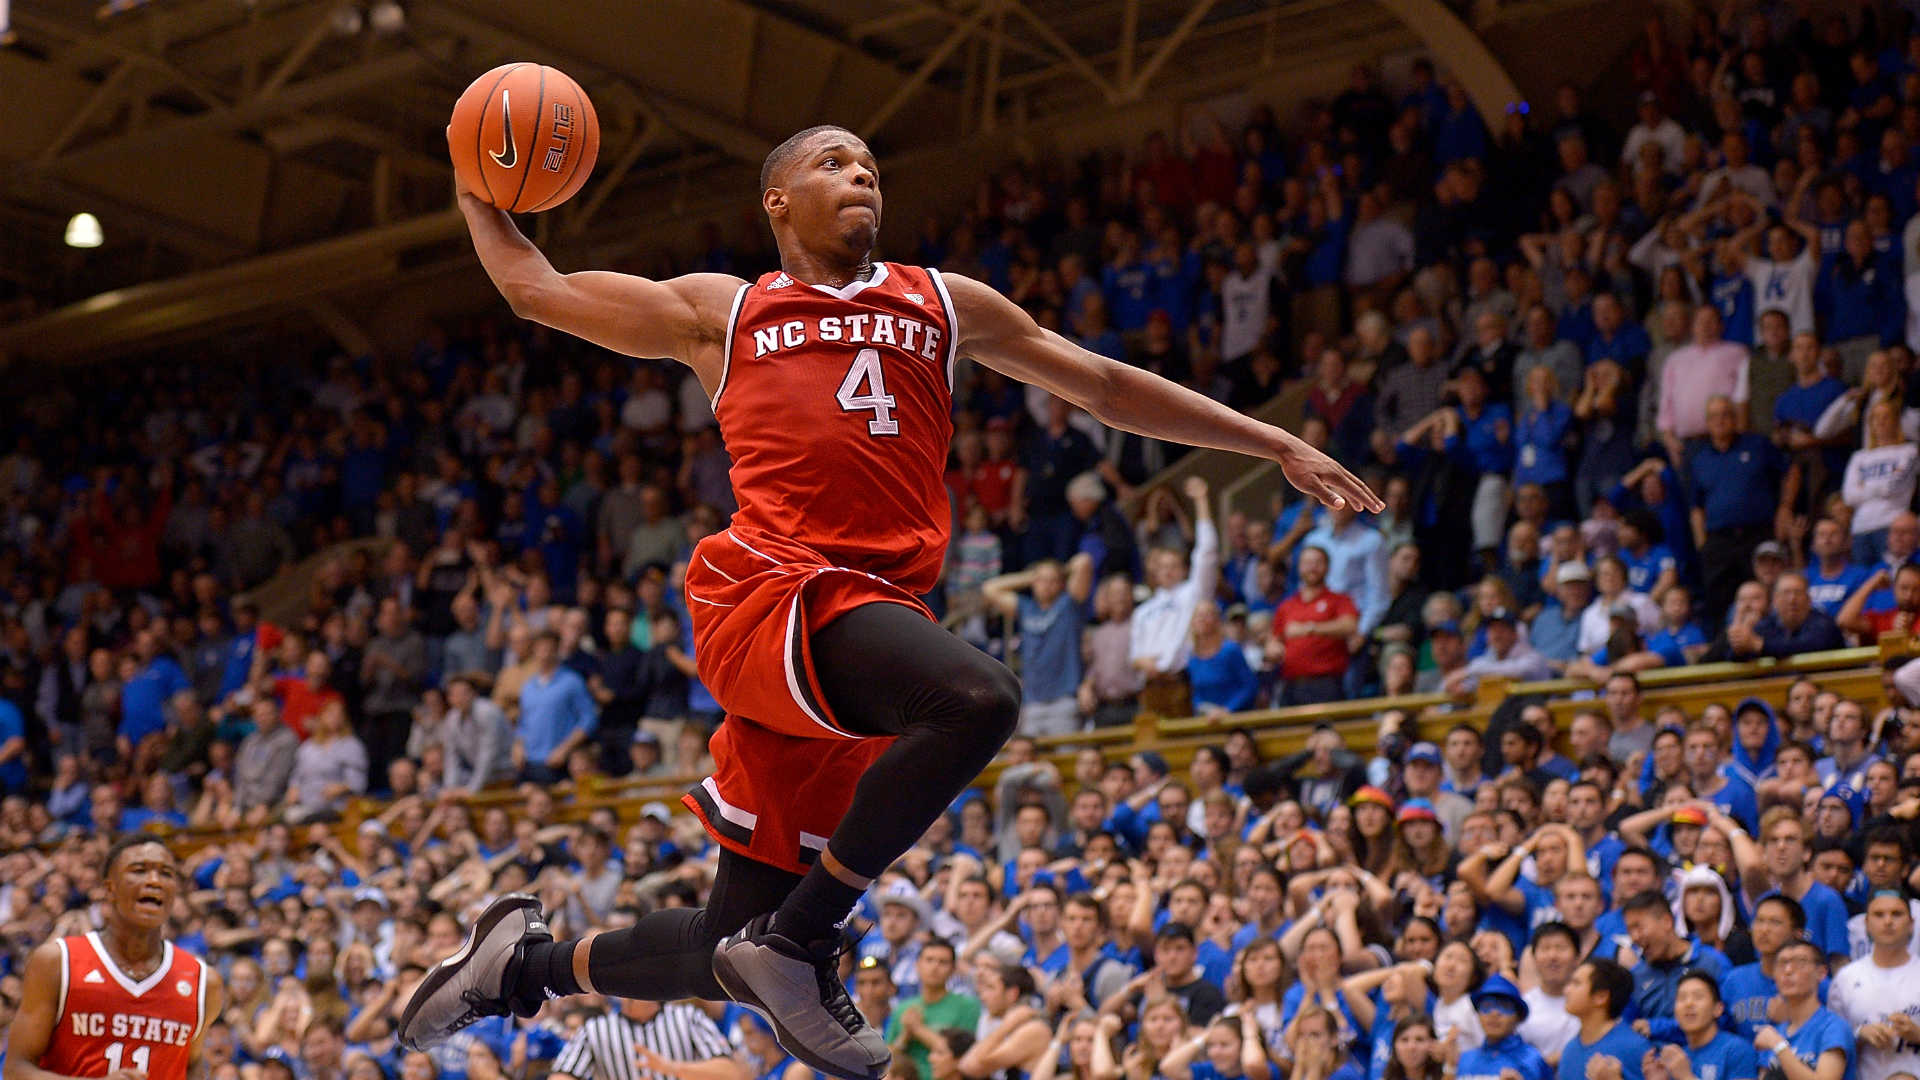 College Basketball Wallpaper: Five Views Of NC State's Drought-ending Win At Duke